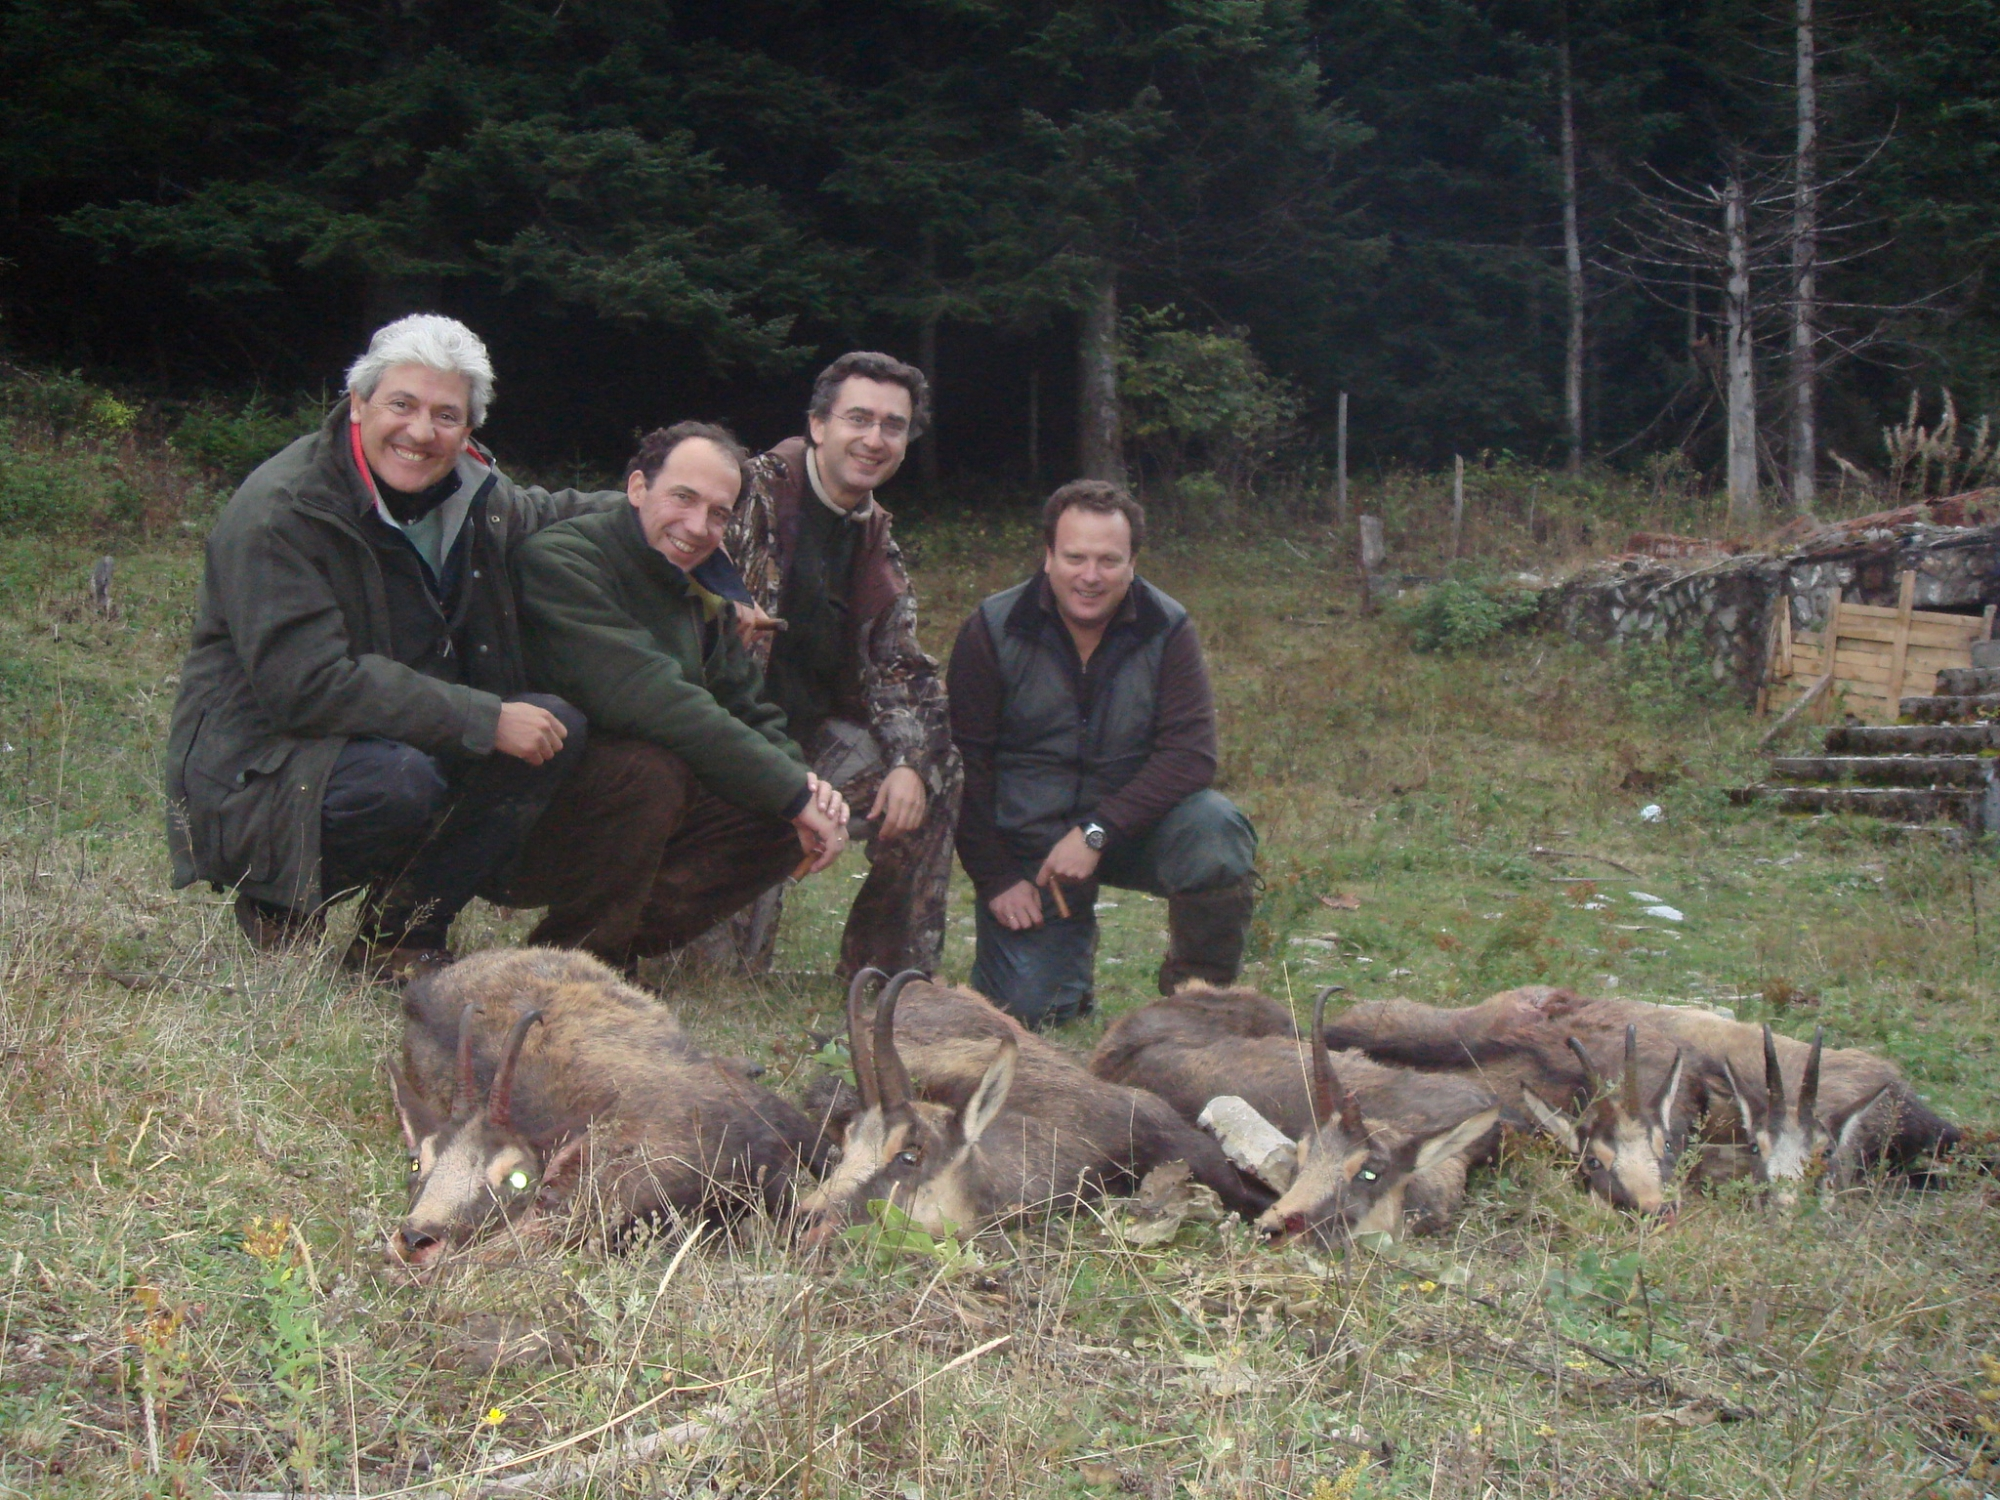 Wild Goat Hunting Trip in Europe